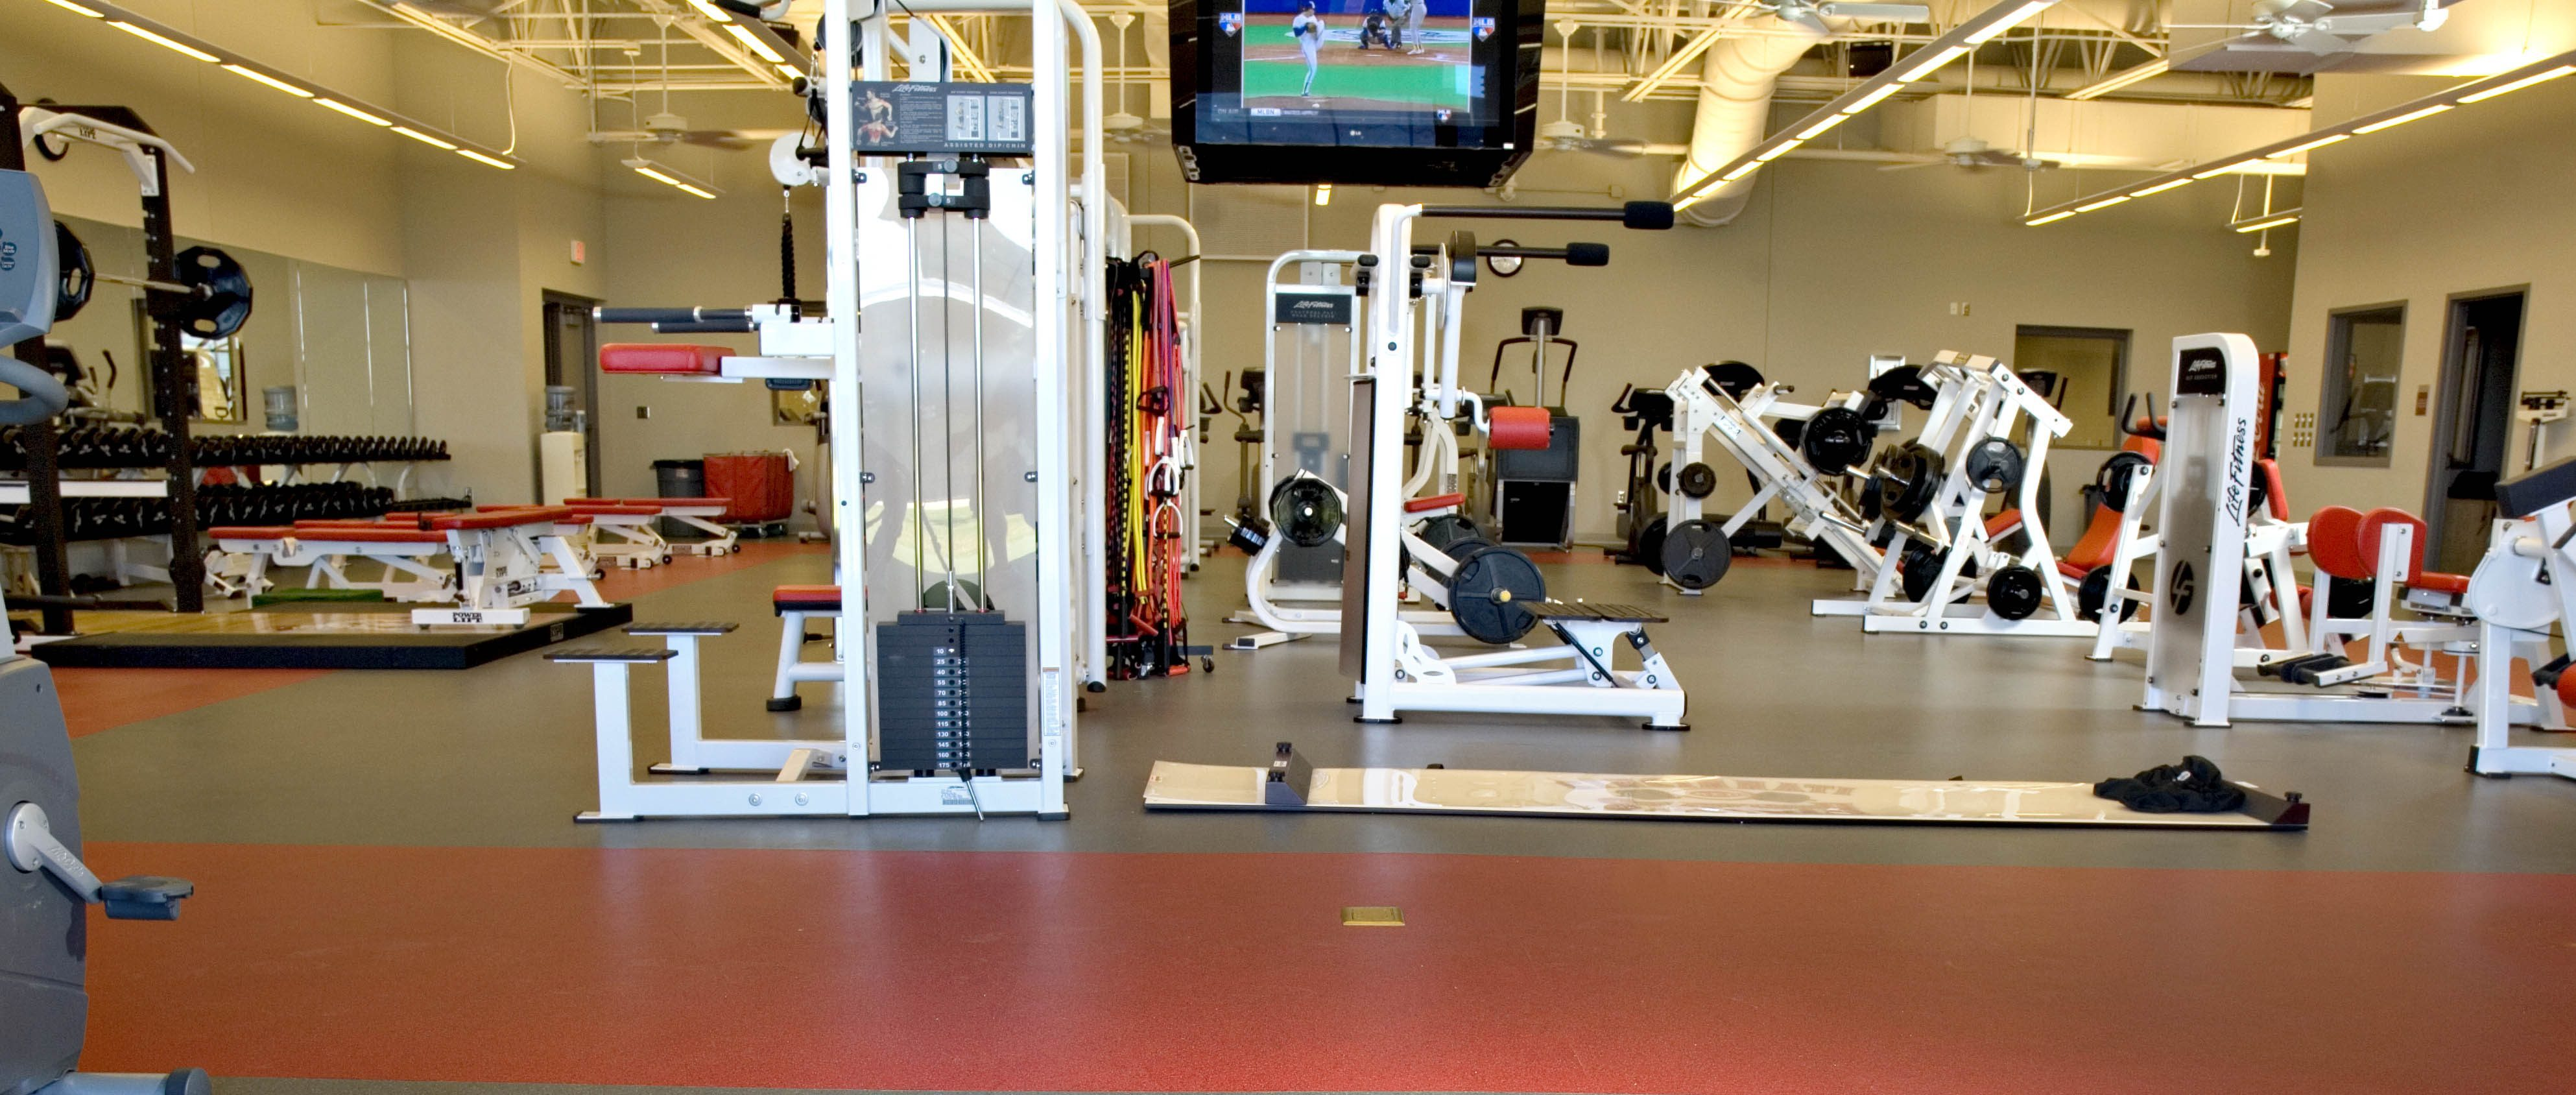 Commercial gym flooring options spectra contract